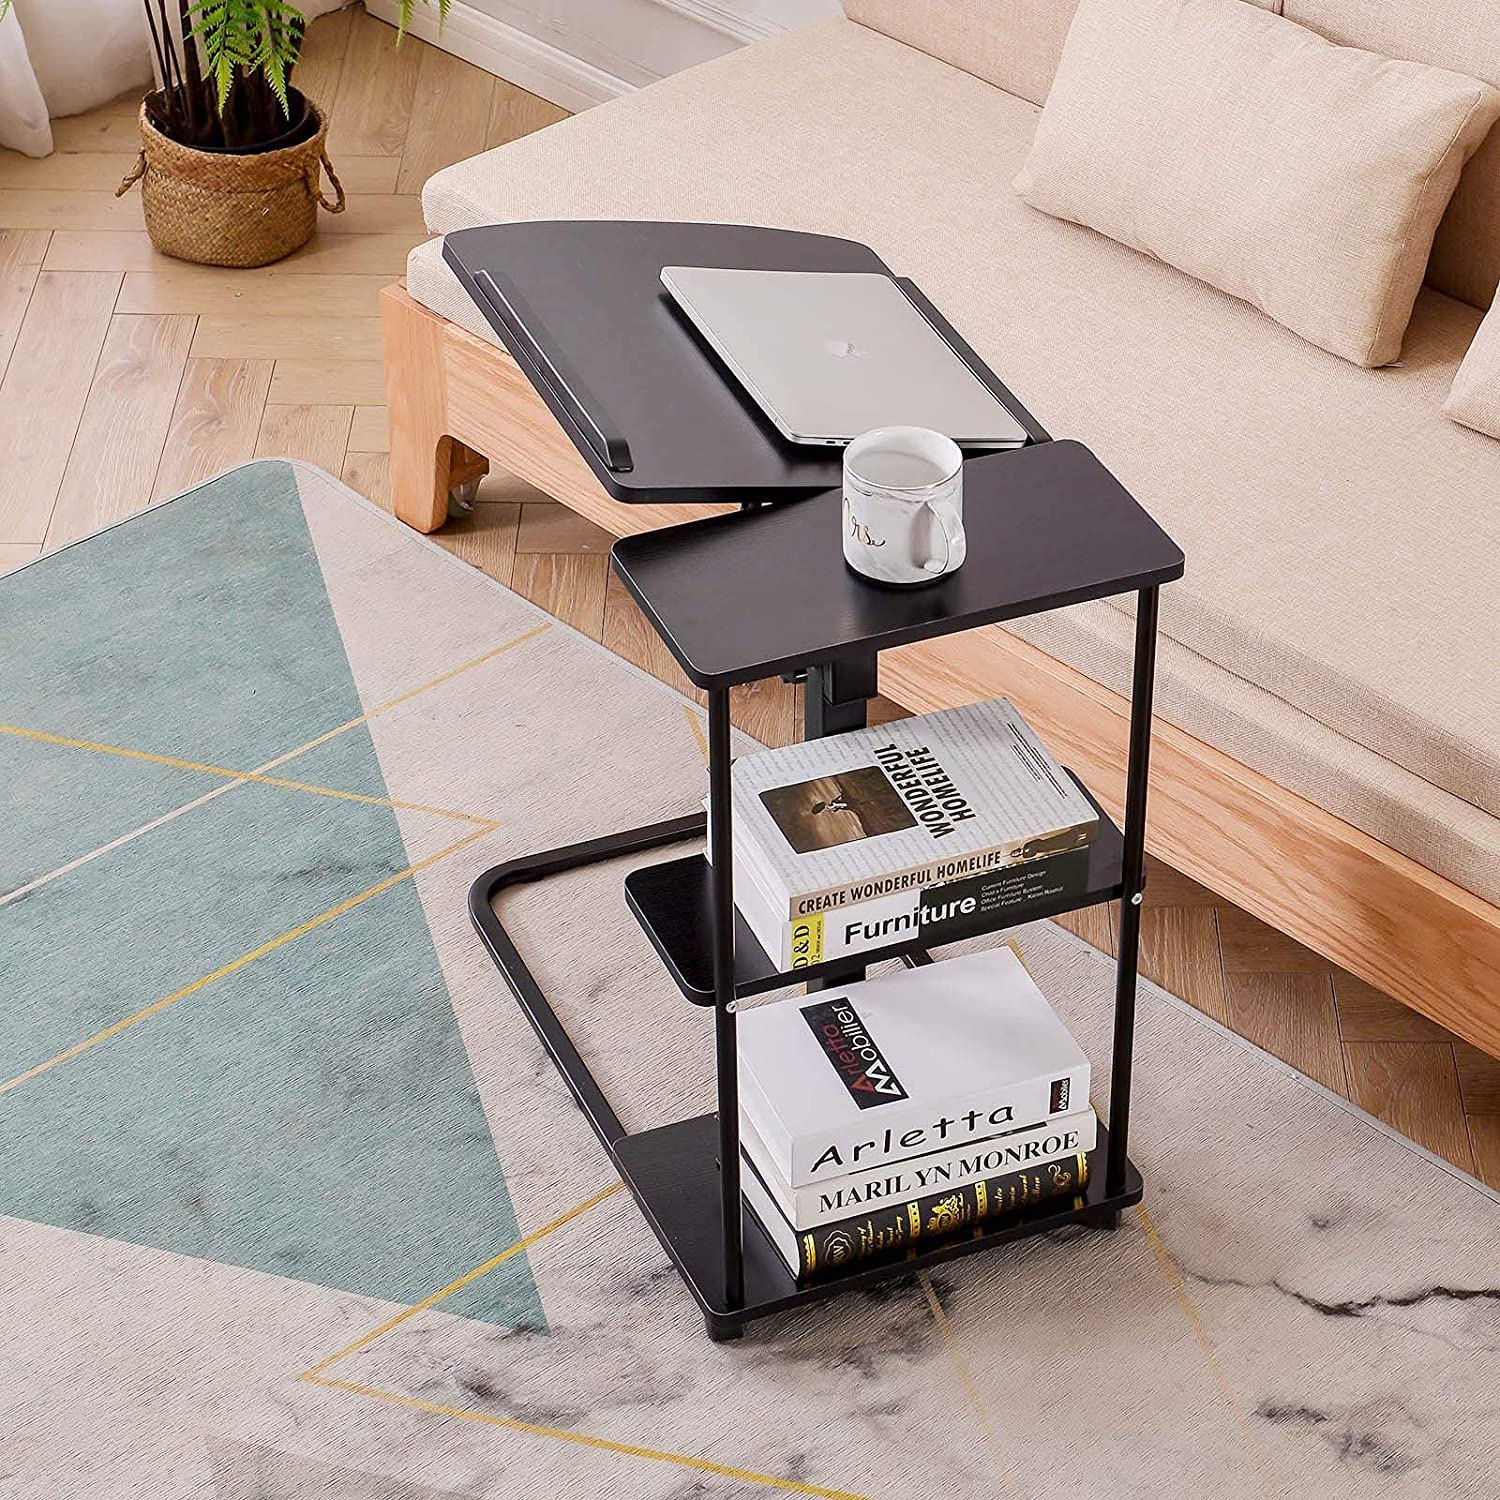 Natwind C-Shaped End Table with Storage Shelves Side Table on Wheels Height Adjustable Couch Table with Storage End Tables for Small Spaces Mobile Sofa Storage Table (Black)